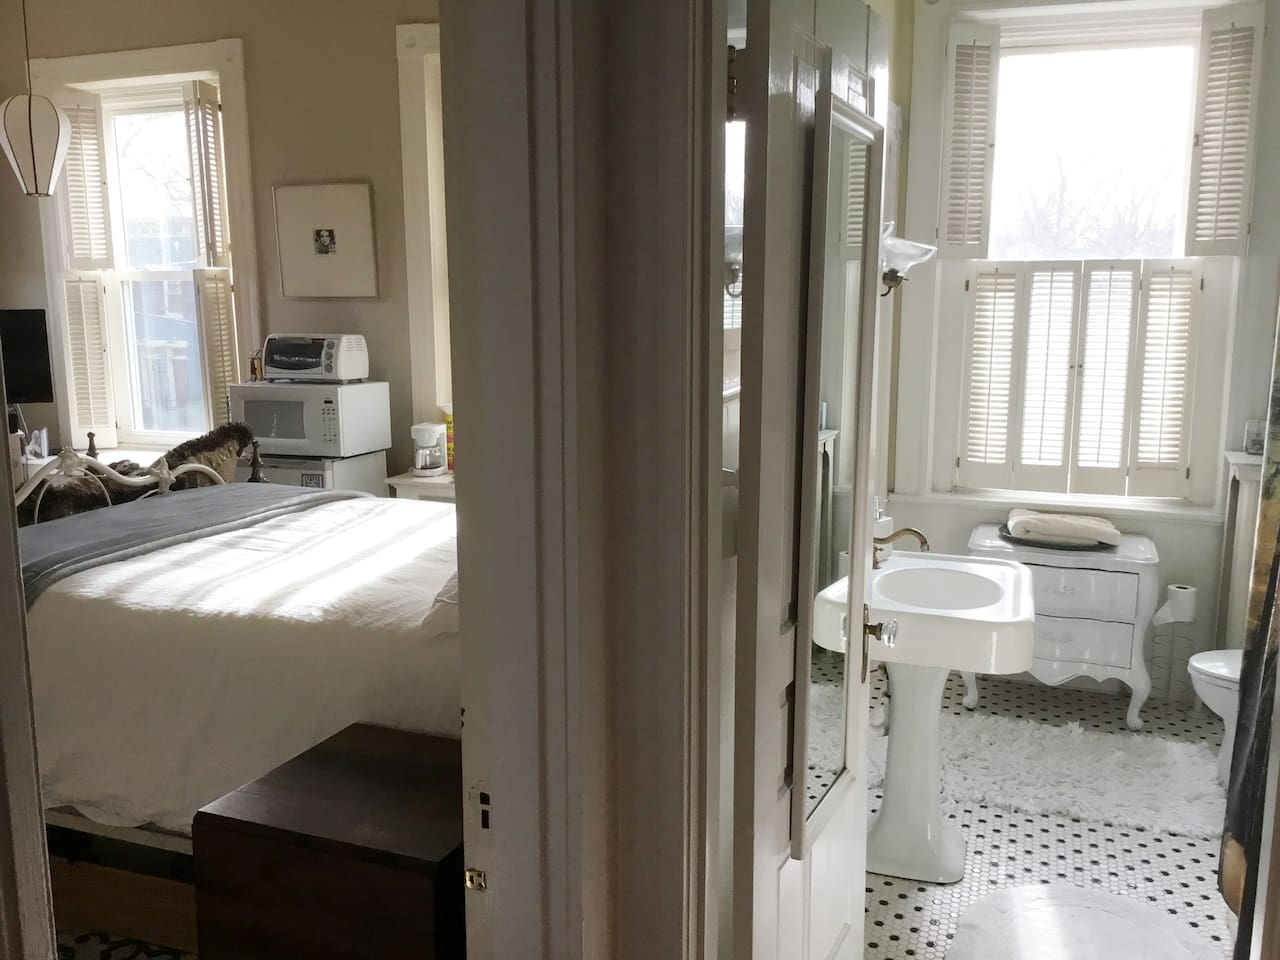 Your room and private bathroom are at the very front of the house on the second floor.